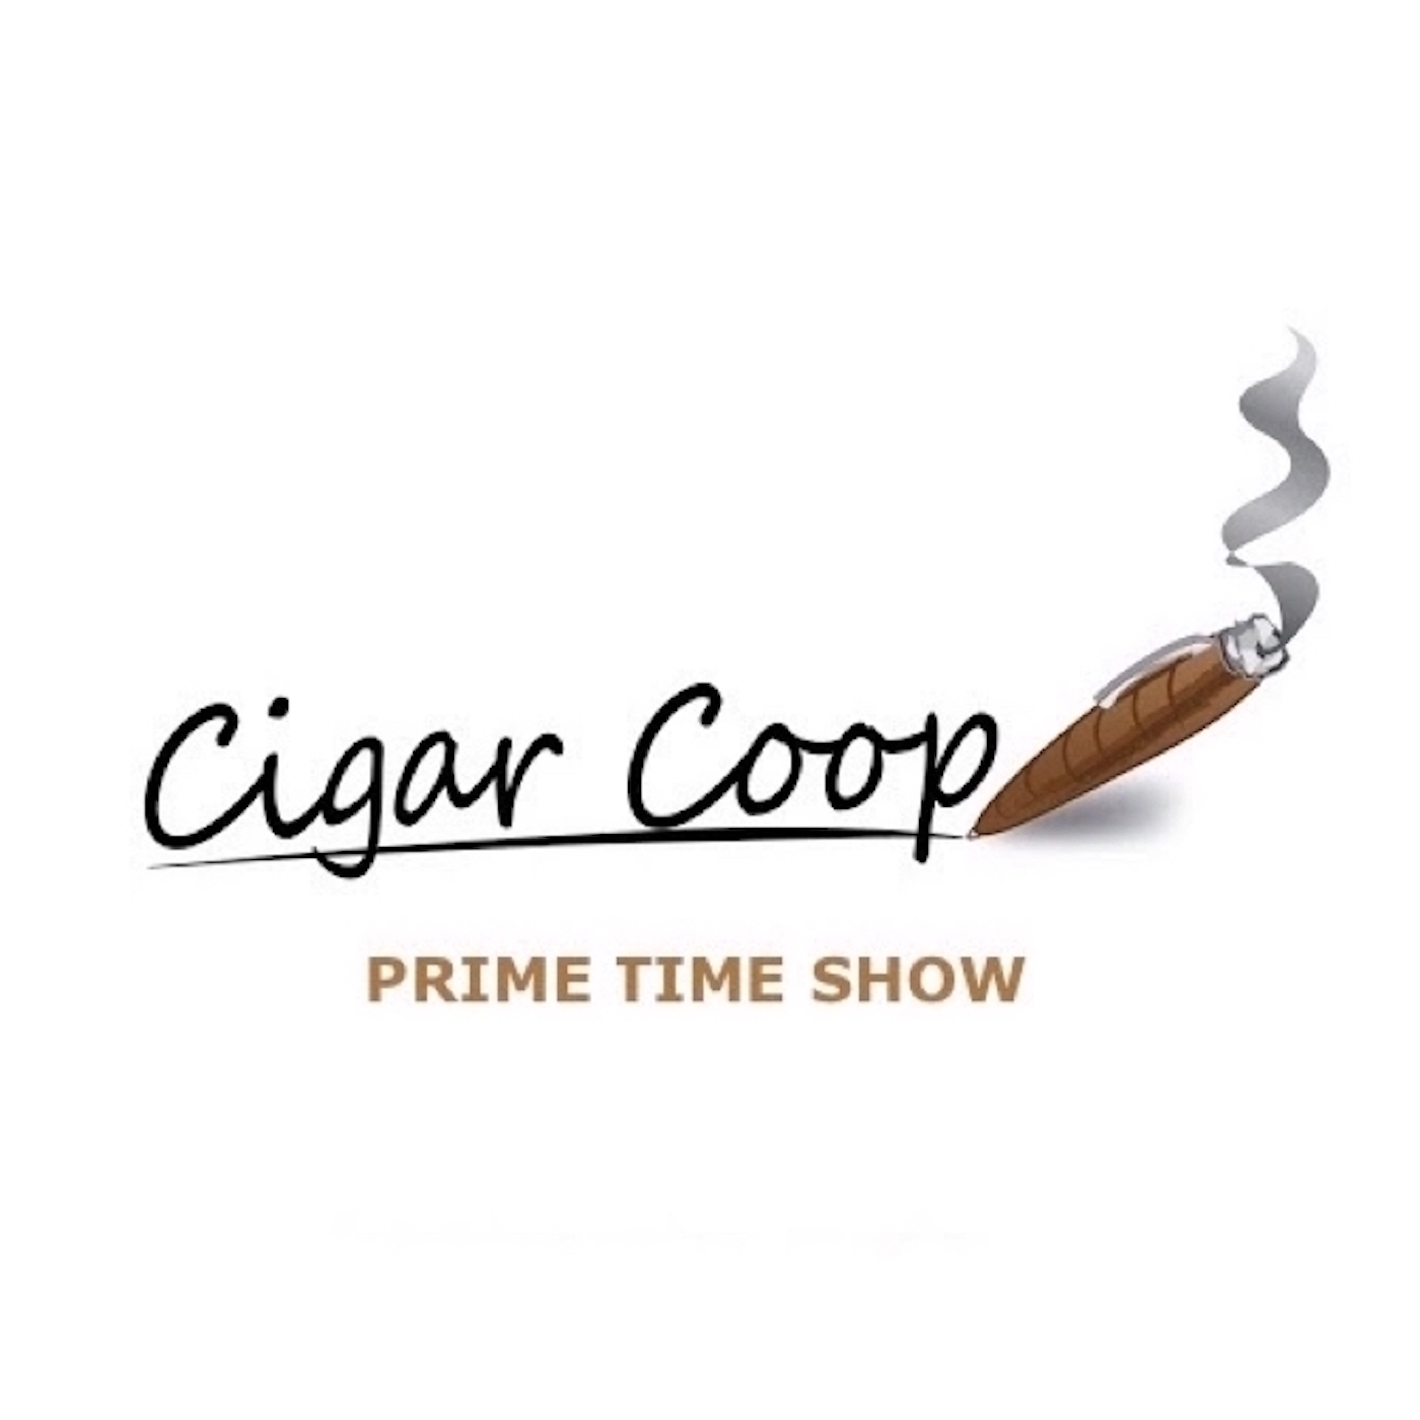 Cigar Coop Prime Time Show